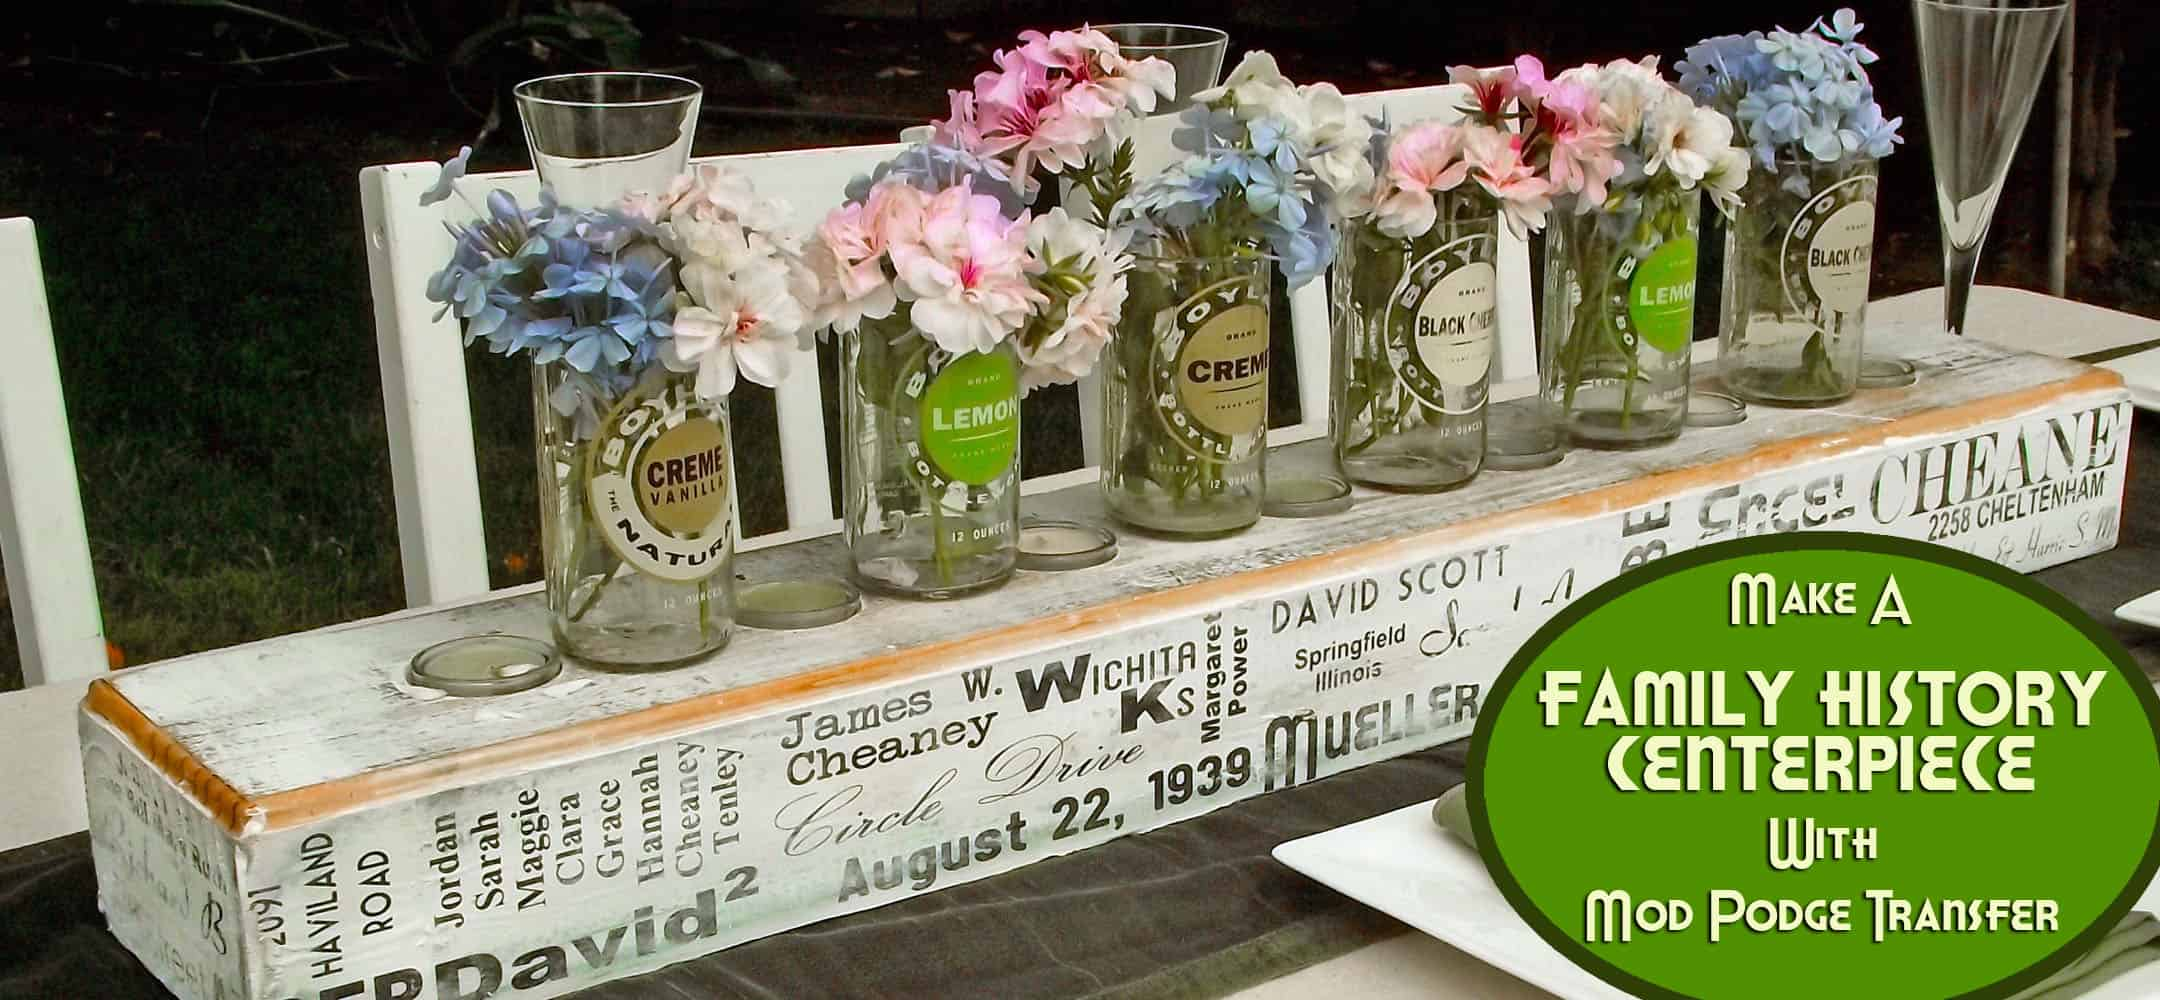 Amazing Diy Family Reunion Centerpiece With Rustic Flair Mod Podge Download Free Architecture Designs Embacsunscenecom